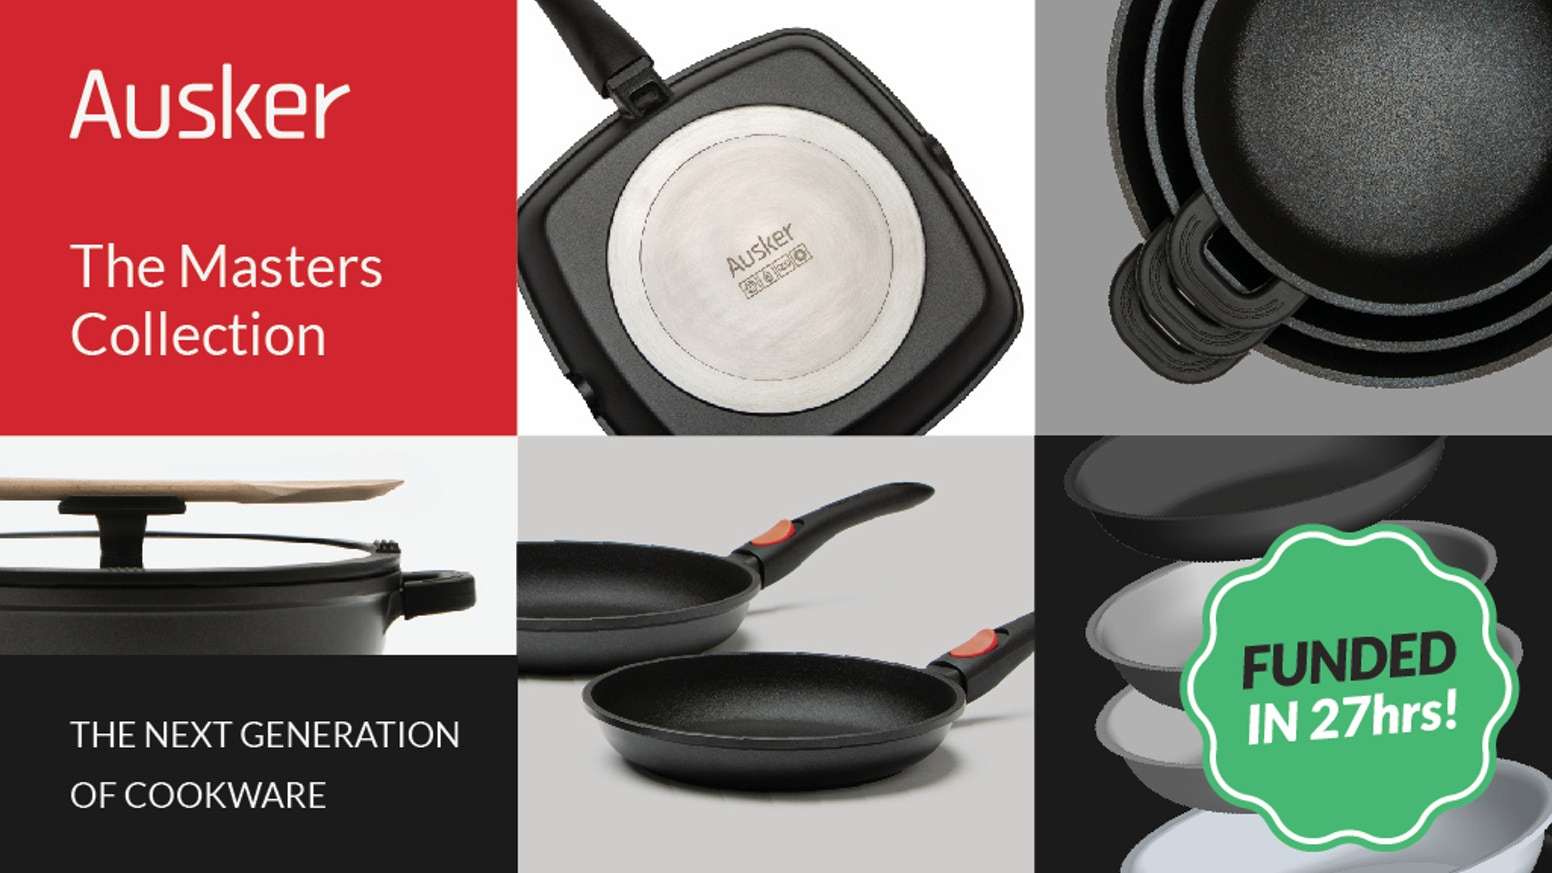 Our die-cast aluminum cookware features PEEK coating, the most groundbreaking scratch and wear-resistant non-stick technology.